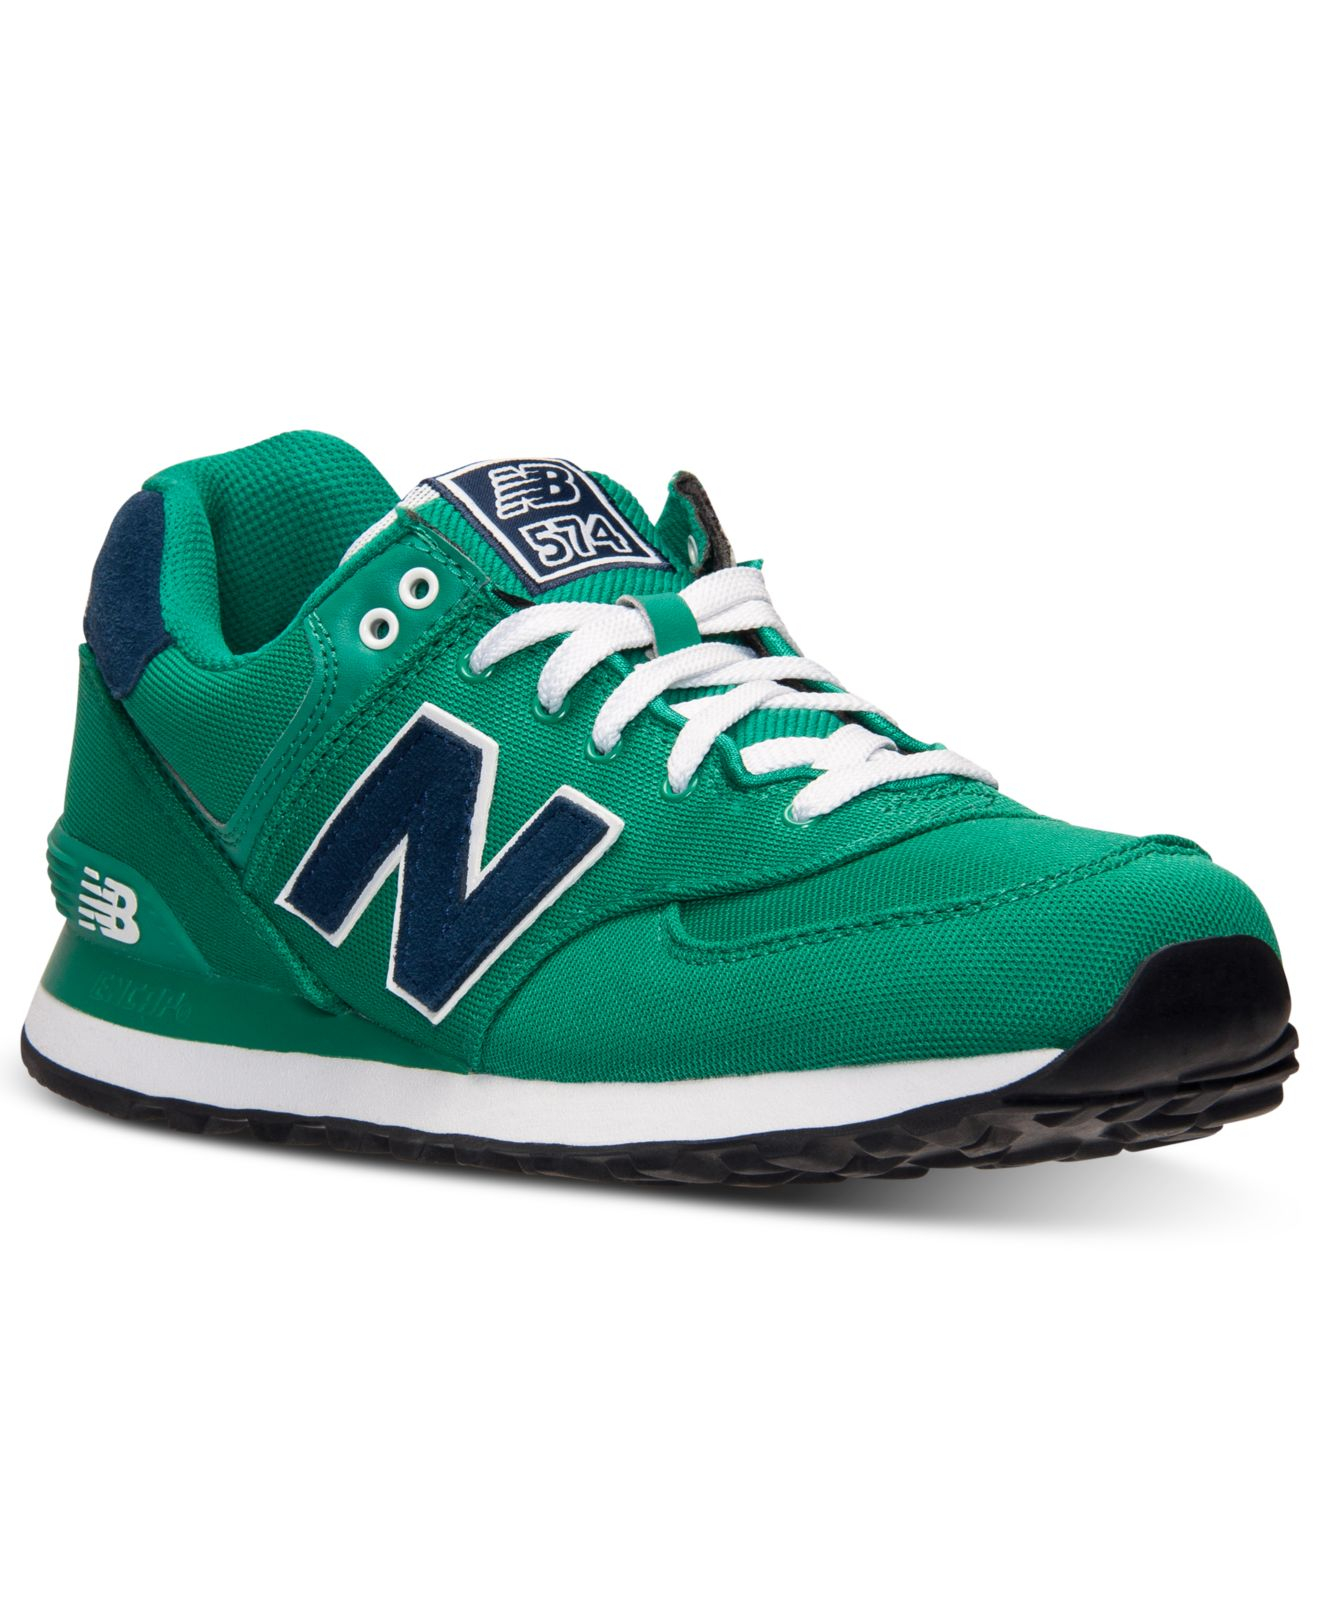 Preppy New Balance Shoes